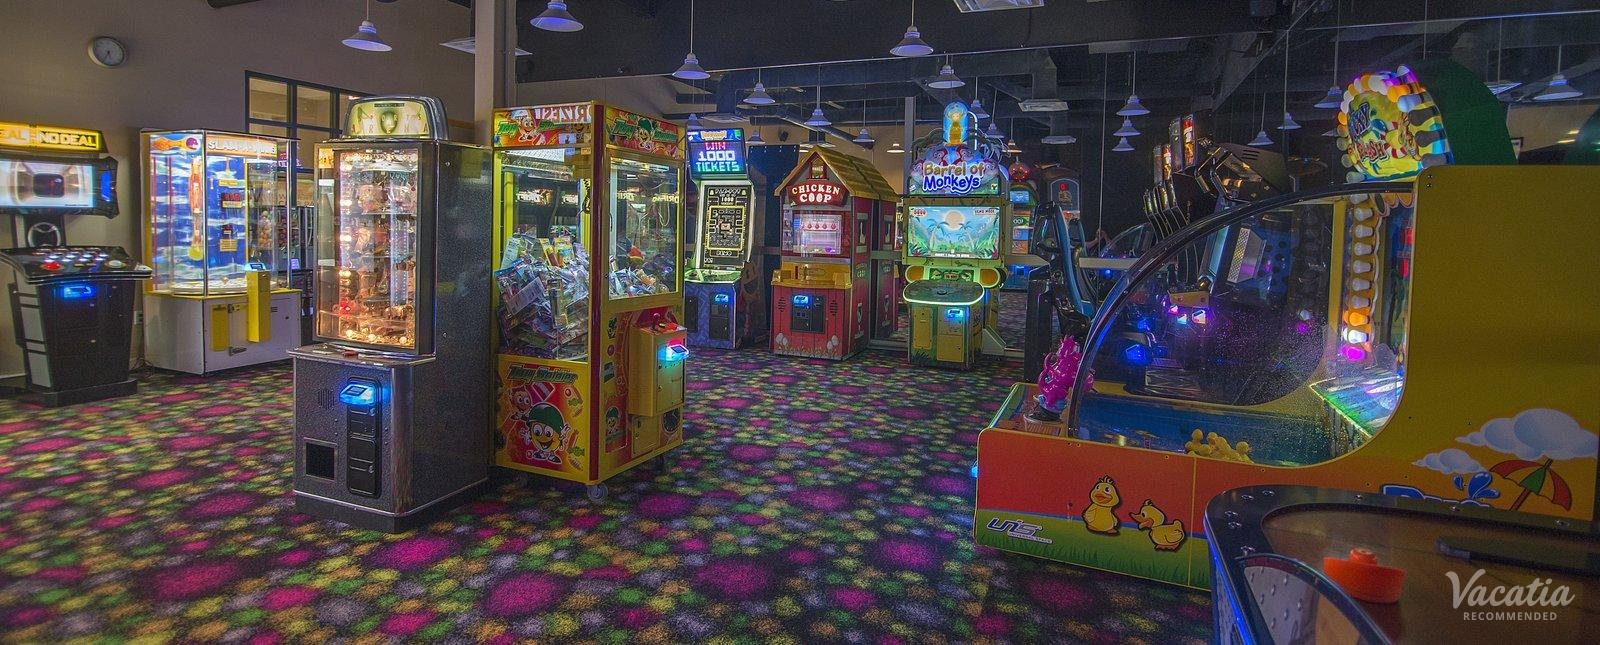 Star Island Resort Arcade